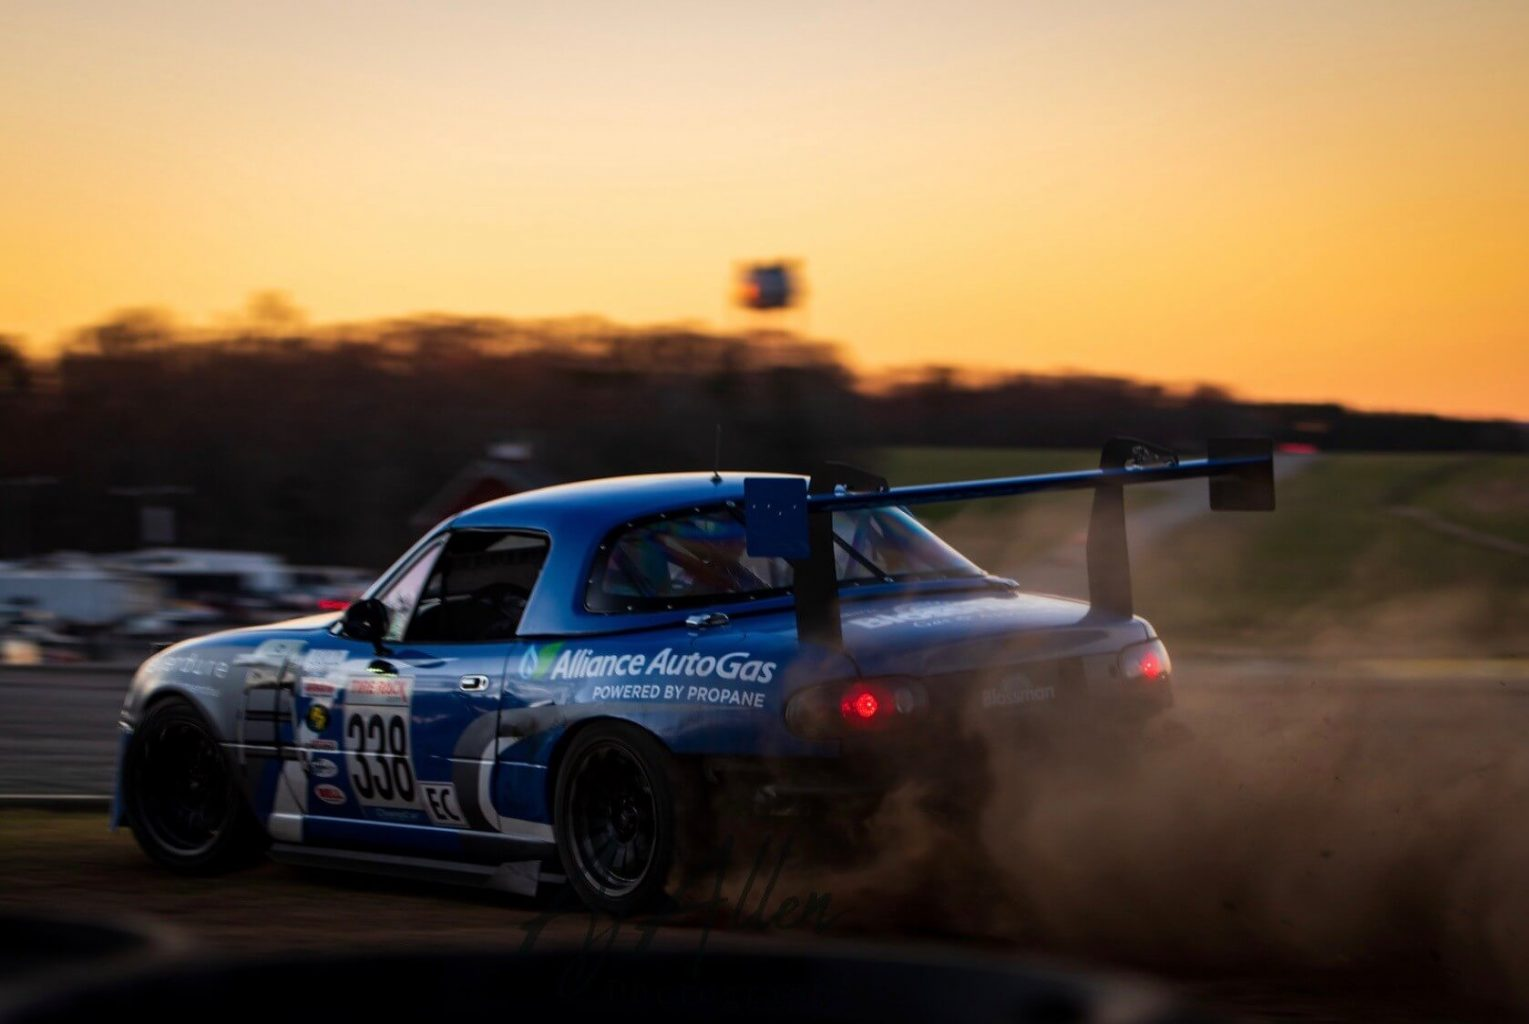 FiveTales Racing Blue Racecar on Track Racing During Sunset